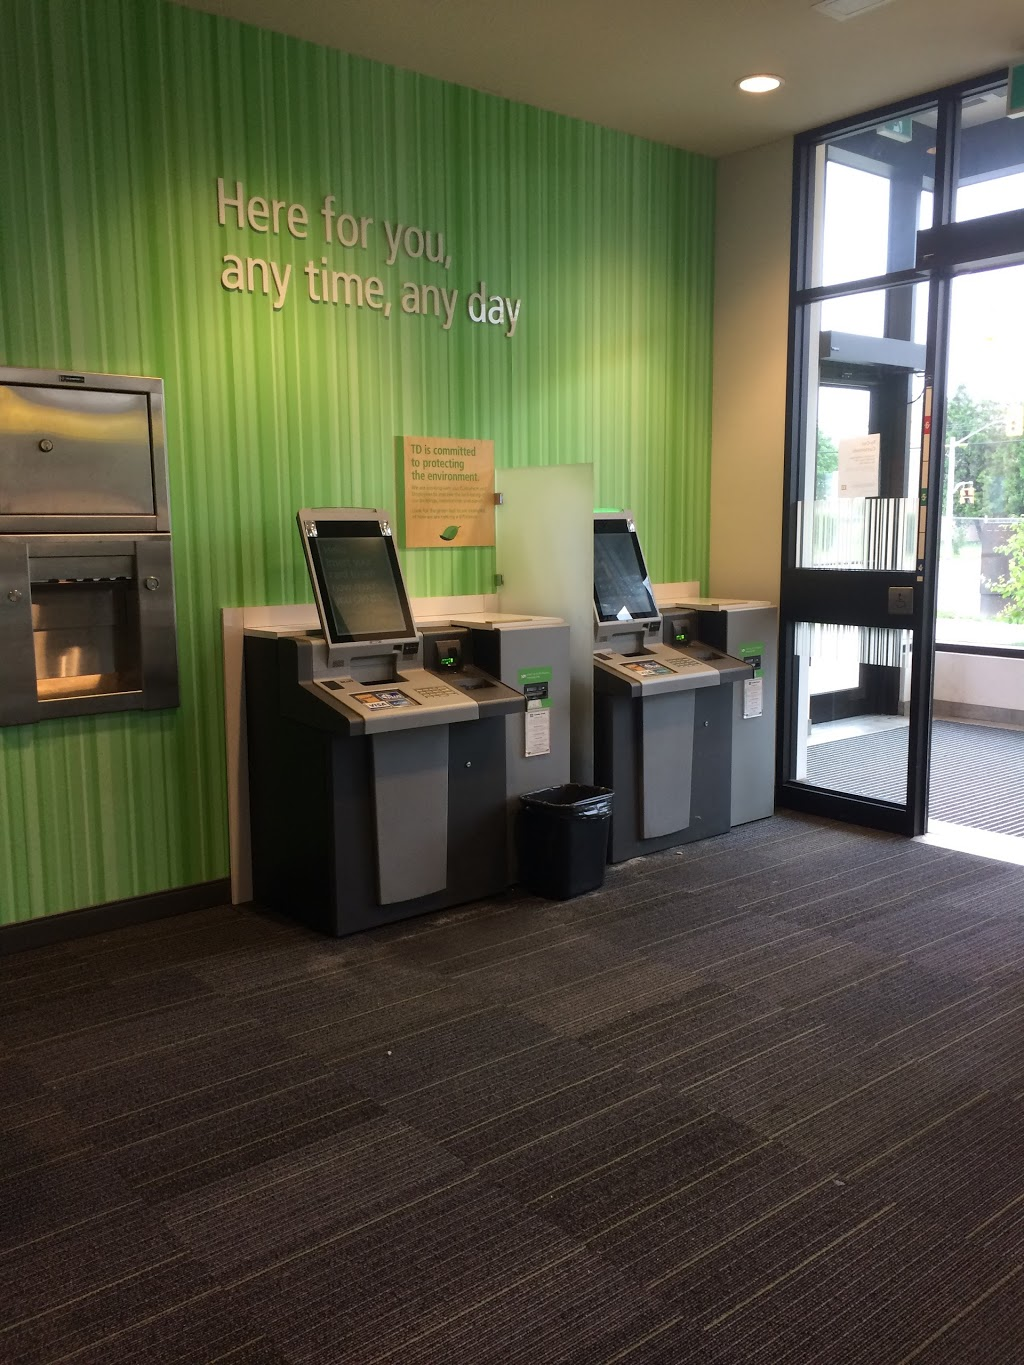 TD Canada Trust Branch and ATM | atm | 7225 Goreway Dr Building G, Mississauga, ON L4T 0B5, Canada | 9056778903 OR +1 905-677-8903